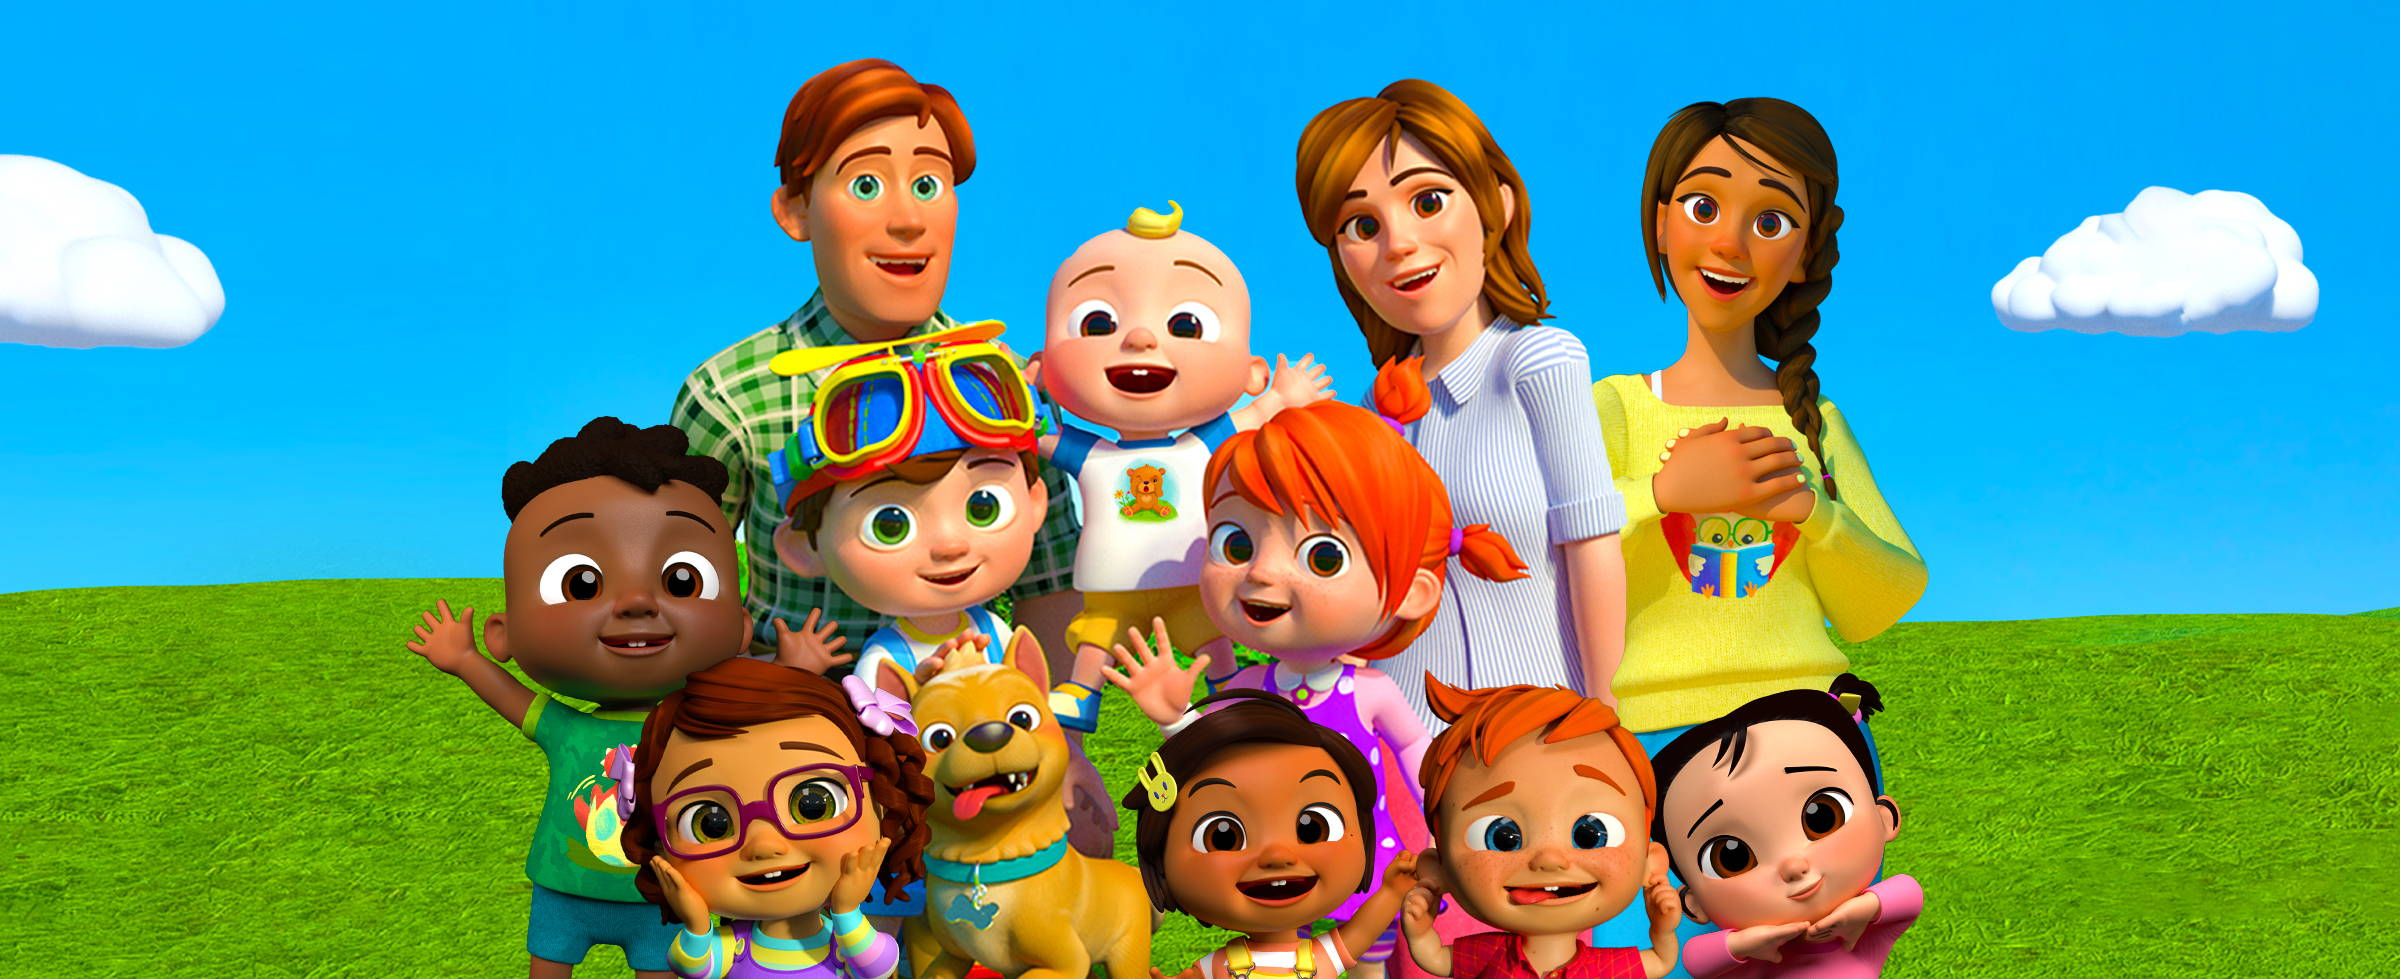 Image of Cocomelon charaters including JJ, YoYo and TomTom